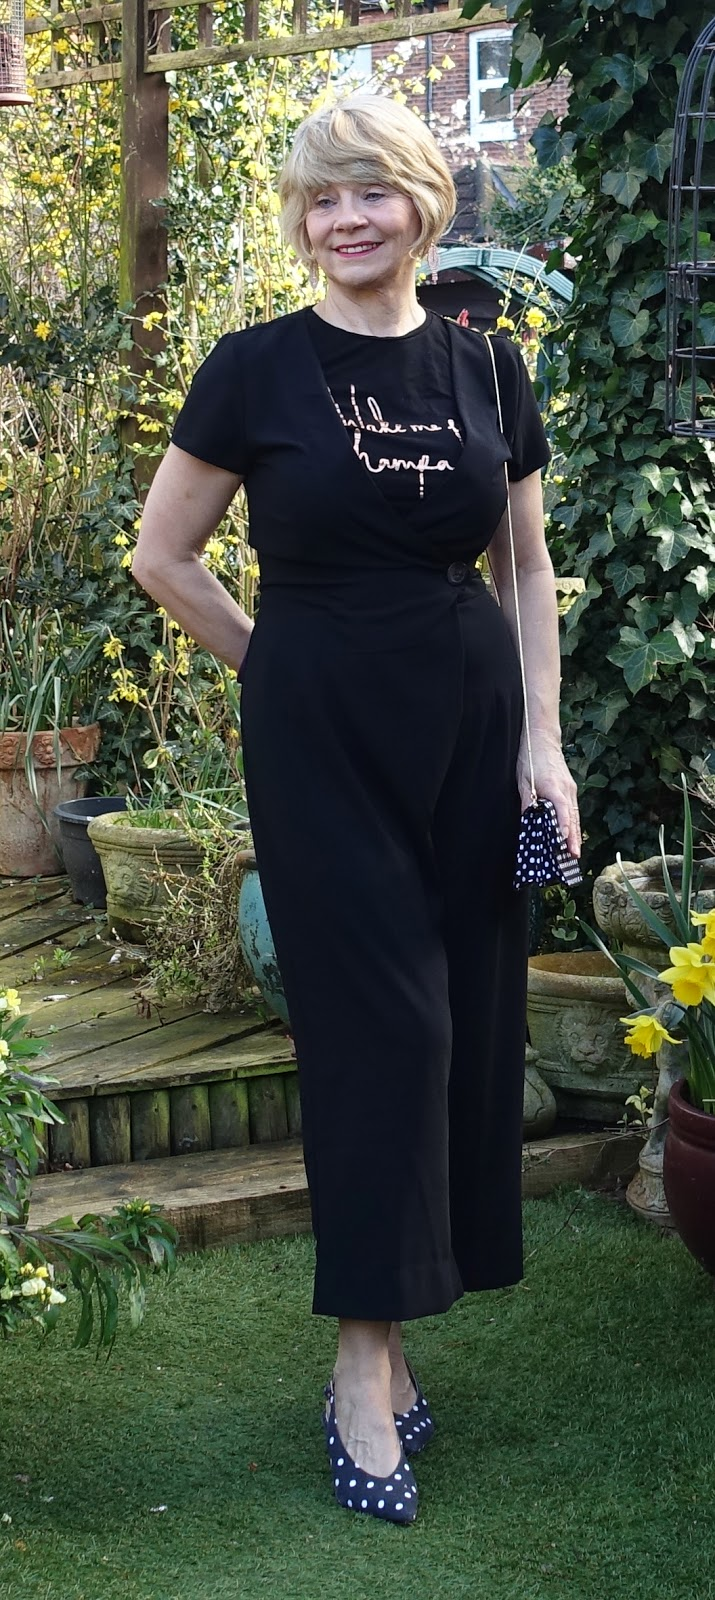 Image showing an over 40s woman wearing a black wrap jumpsuit with a black tee shirt underneath.